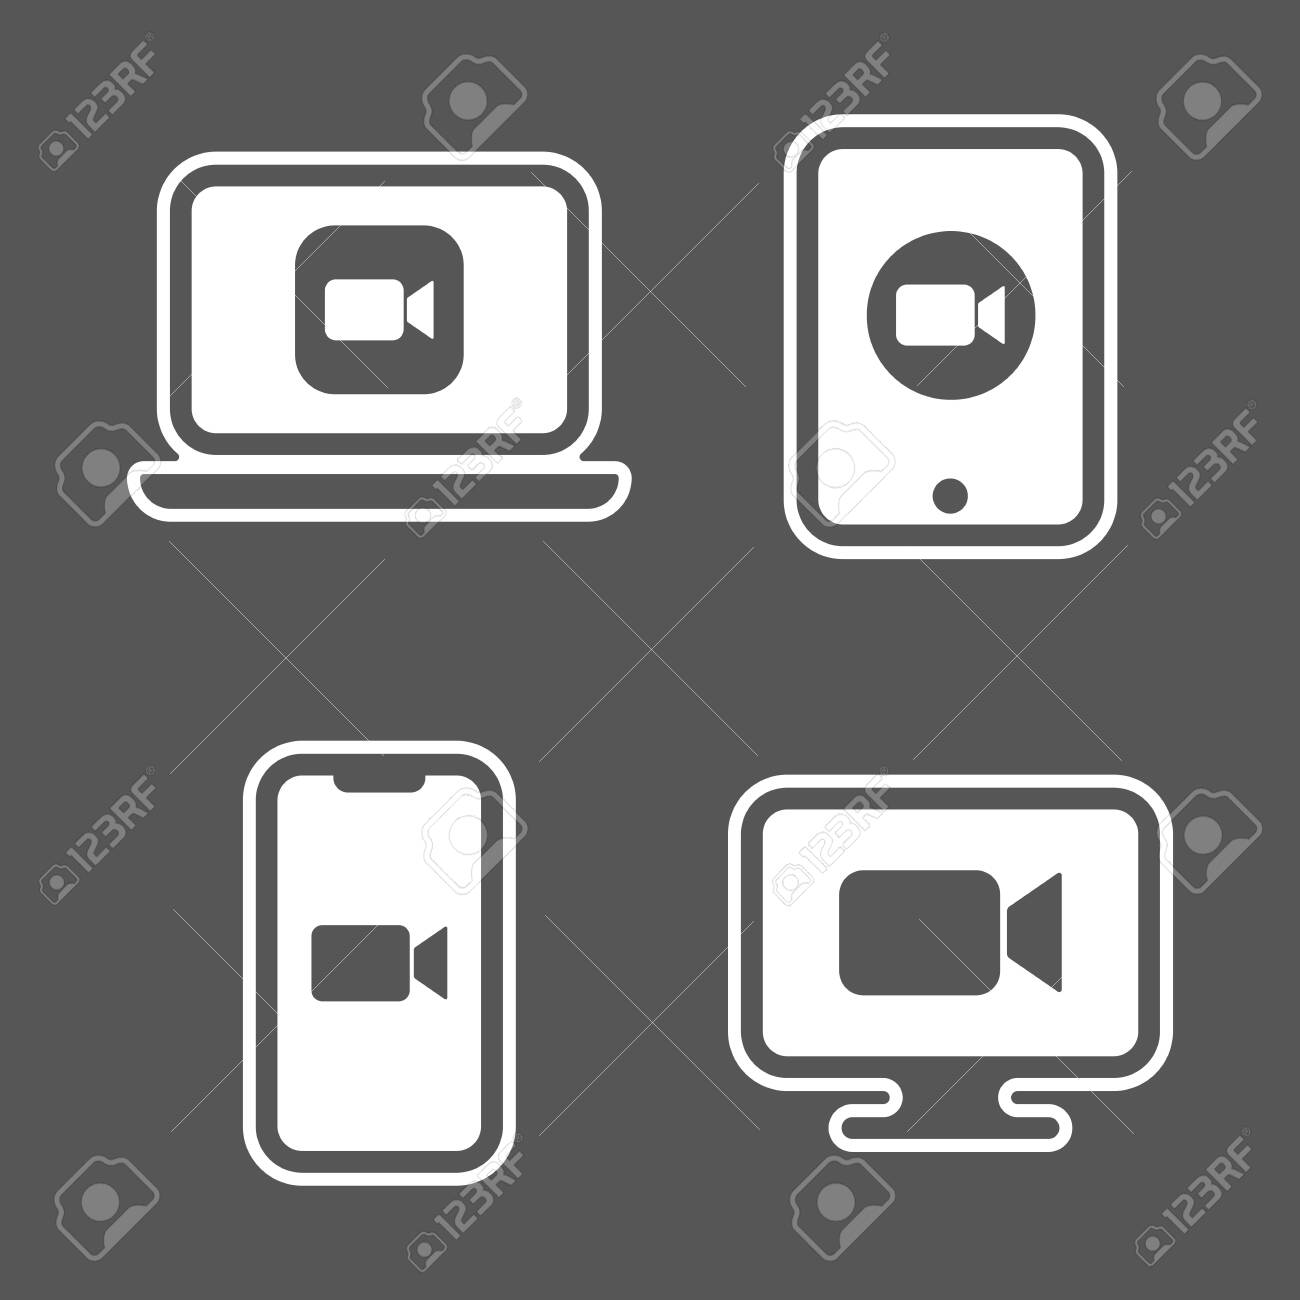 Blue camera icons - Camera app icons on different gadgets. - 147130352